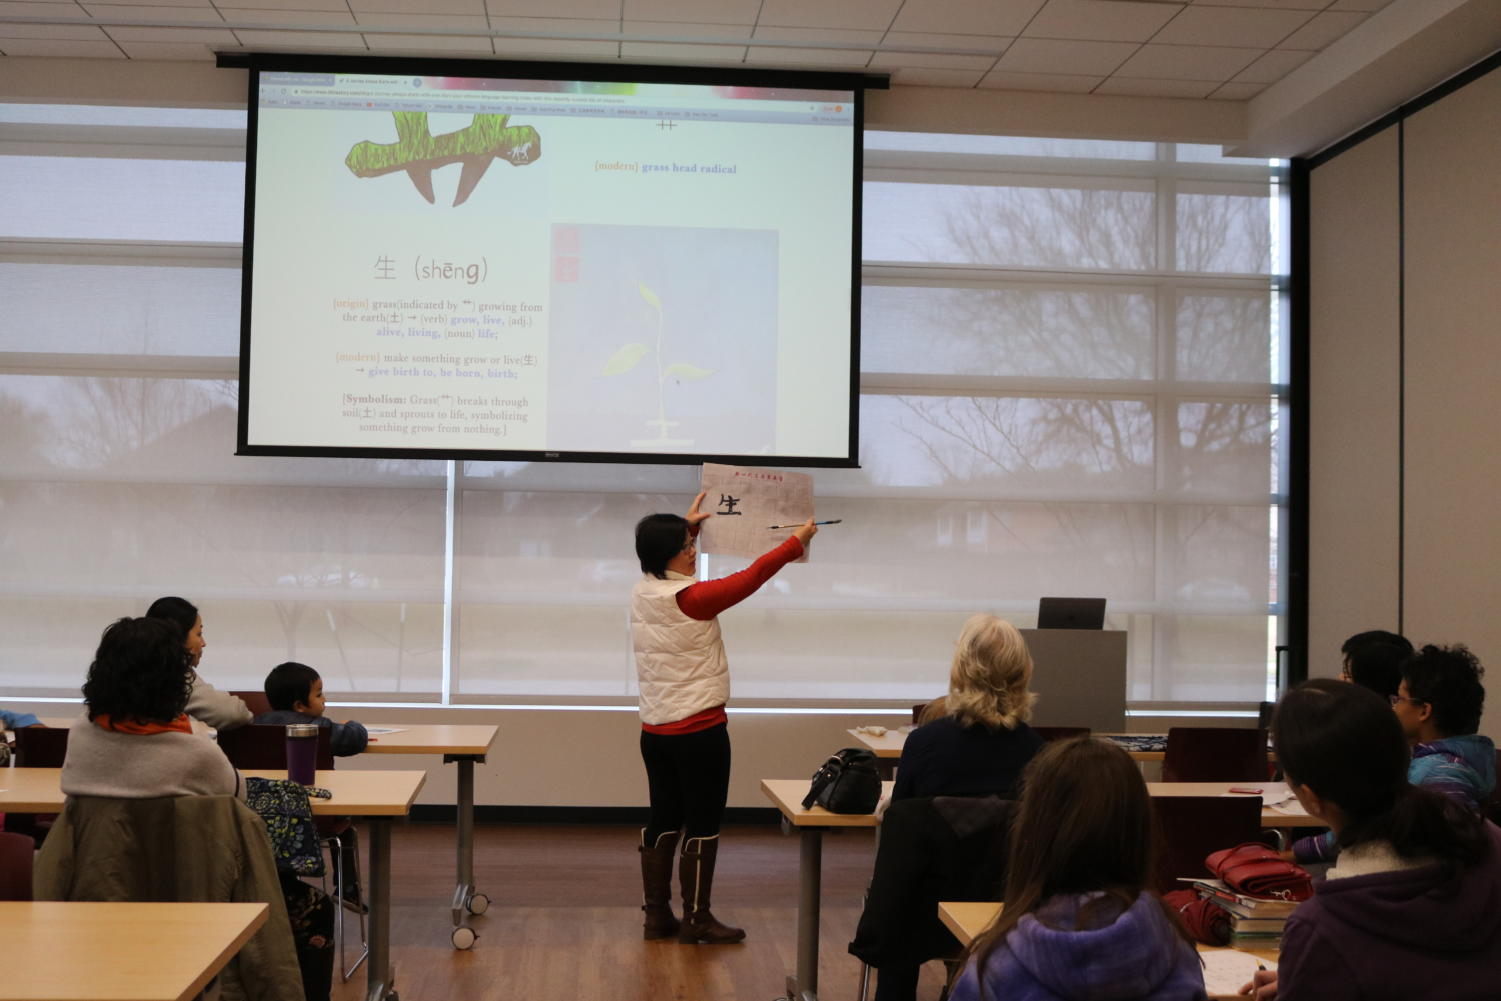 Haiyan Fan explains Chinese characters broken down into 7 simple strokes. Dr.Fan earned her Ph.D. from Texas A&M and now travels with the Fort Worth Museum of Science and History to teach Chinese in a fun and simple way.